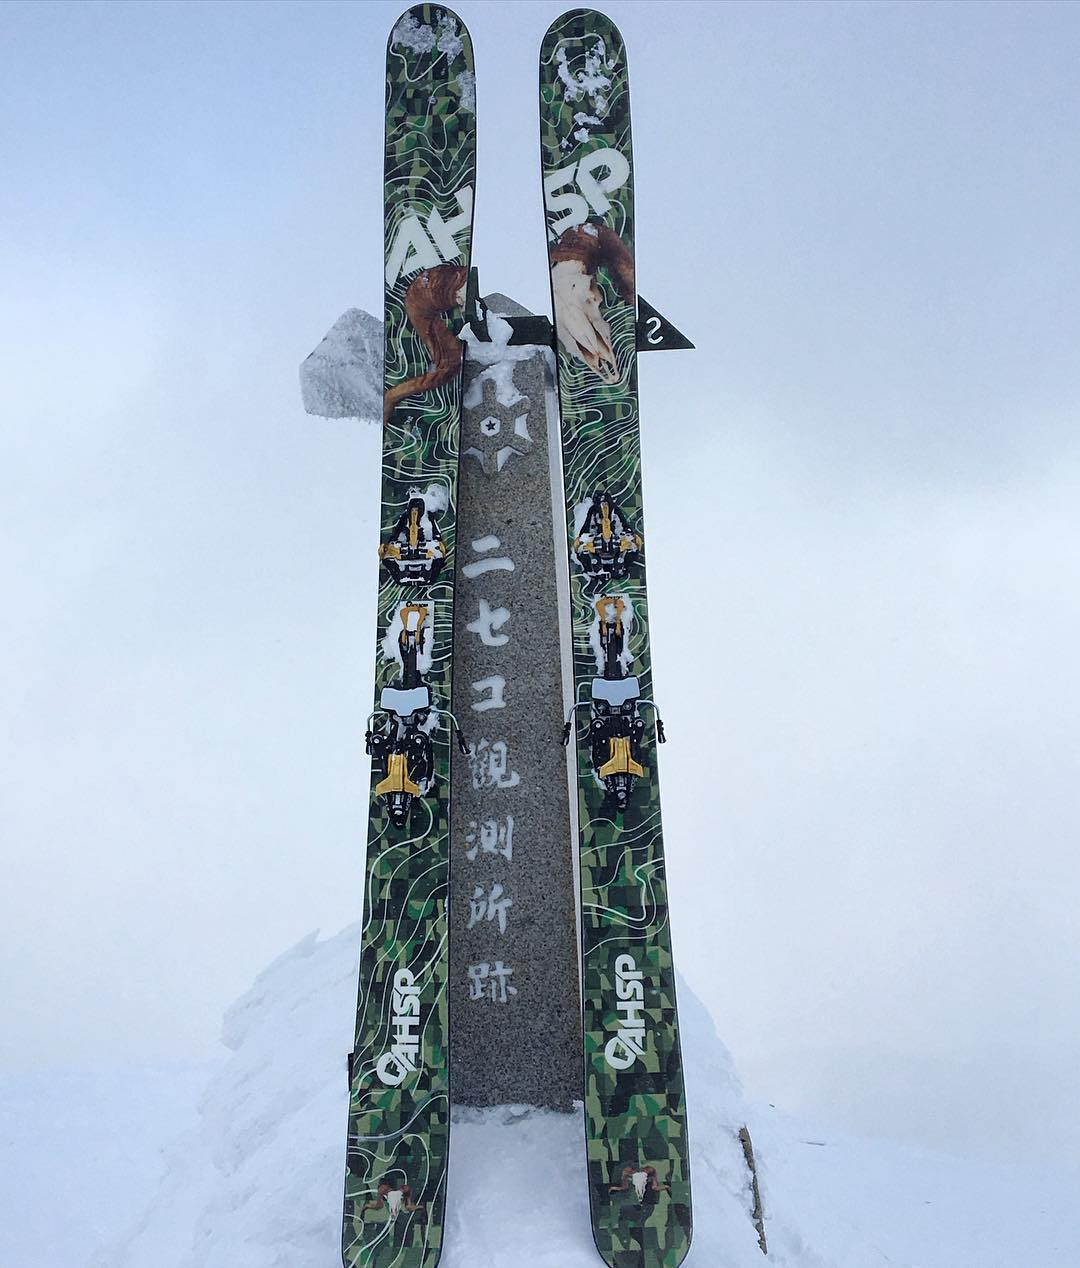 Dan G. From Aspen Highlands Ski Patrol sporting his 188cm Trophy in #Japan #japow #ahsp